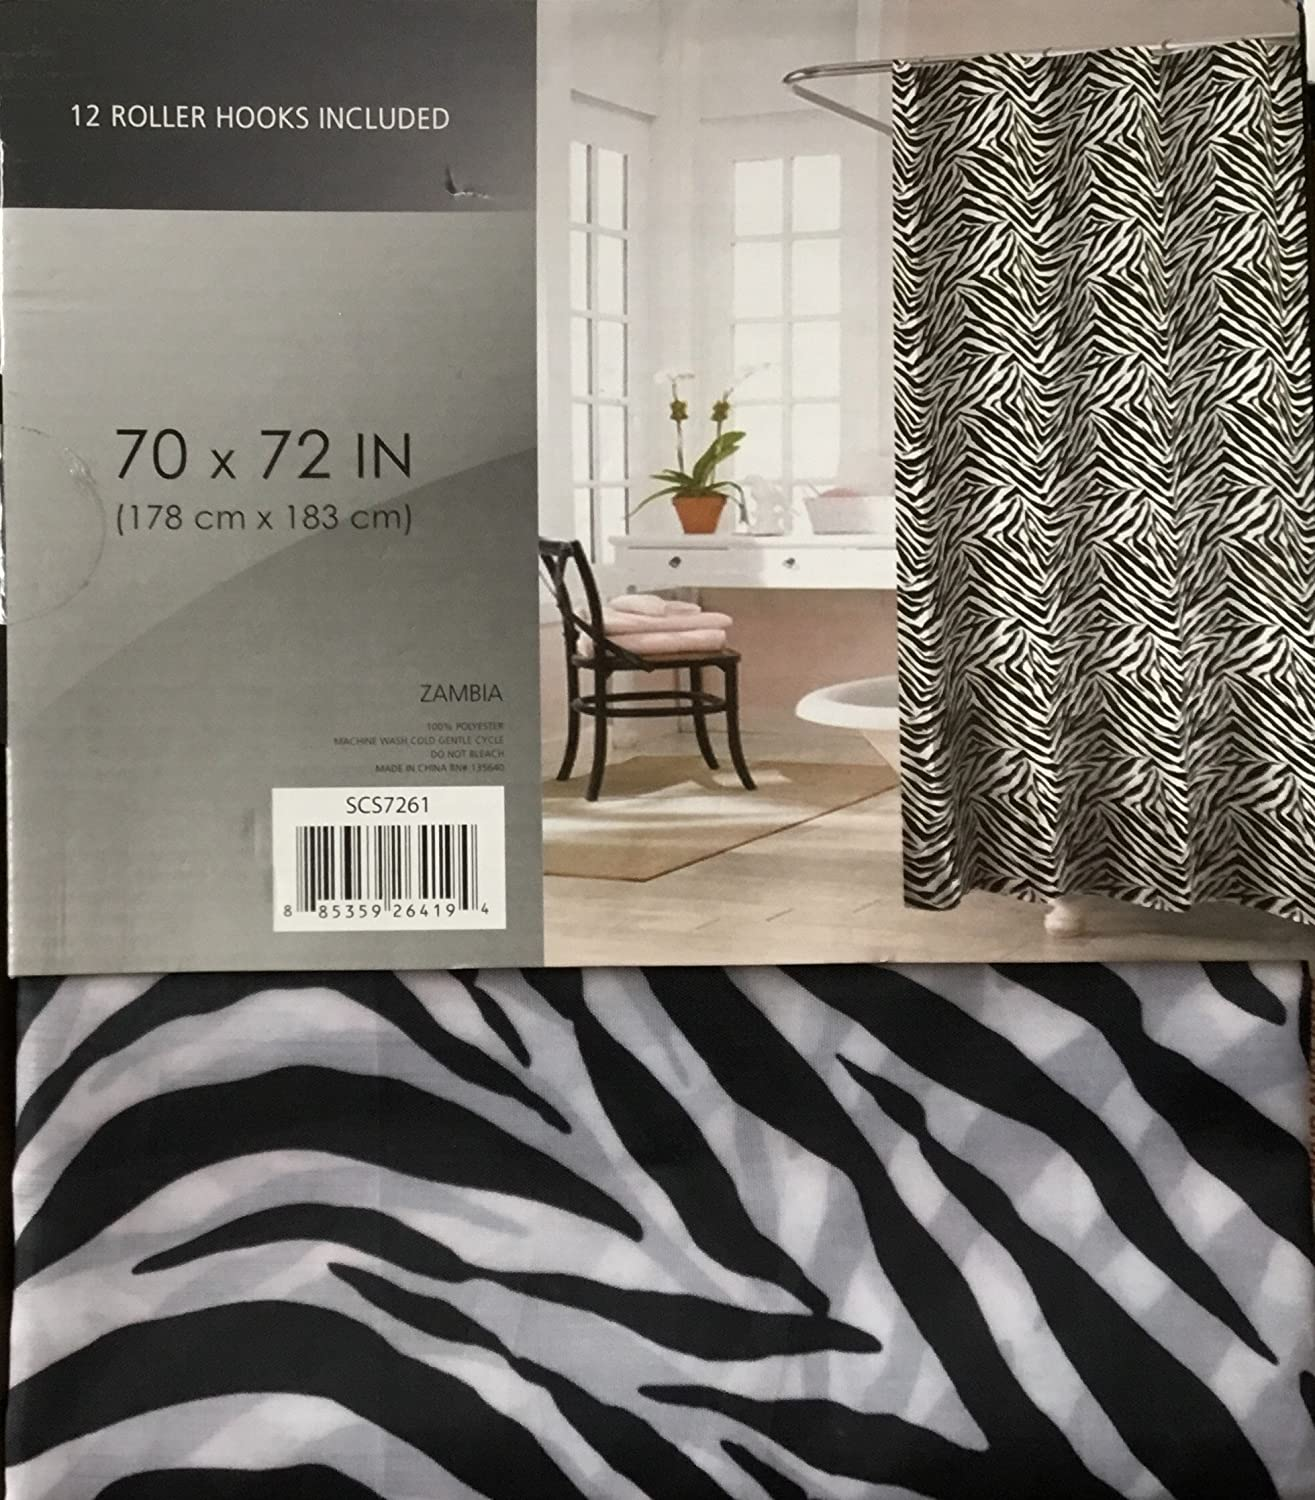 Amazon Zambia Black White Zebra Printed Canvas Shower Curtain 70 X 72 With 12 Roller Hooks Home Kitchen